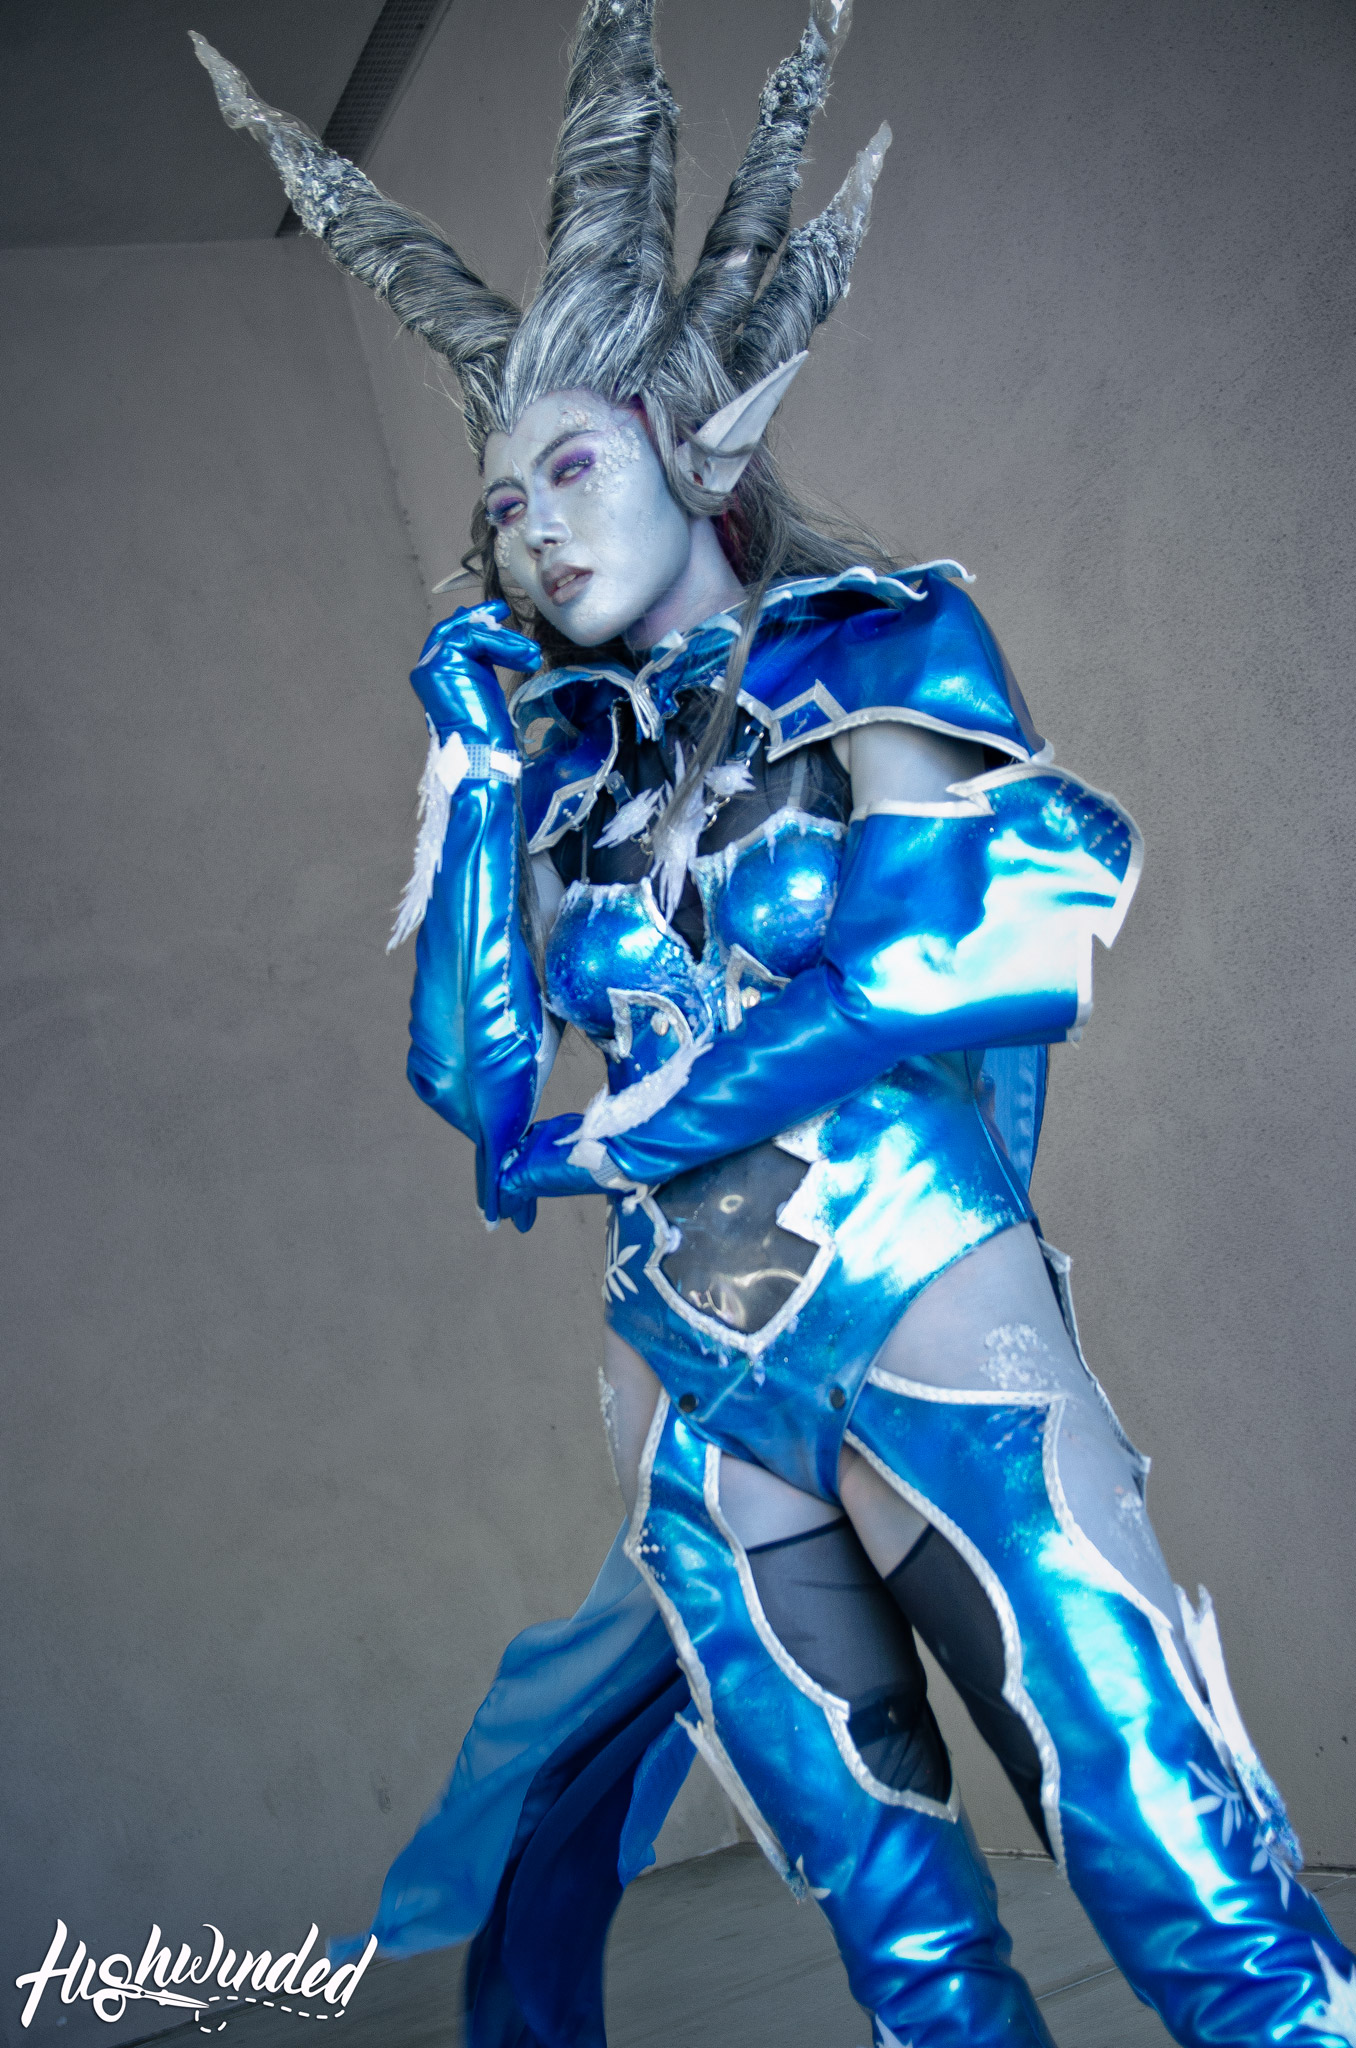 Ff14 Shiva Images - Reverse Search